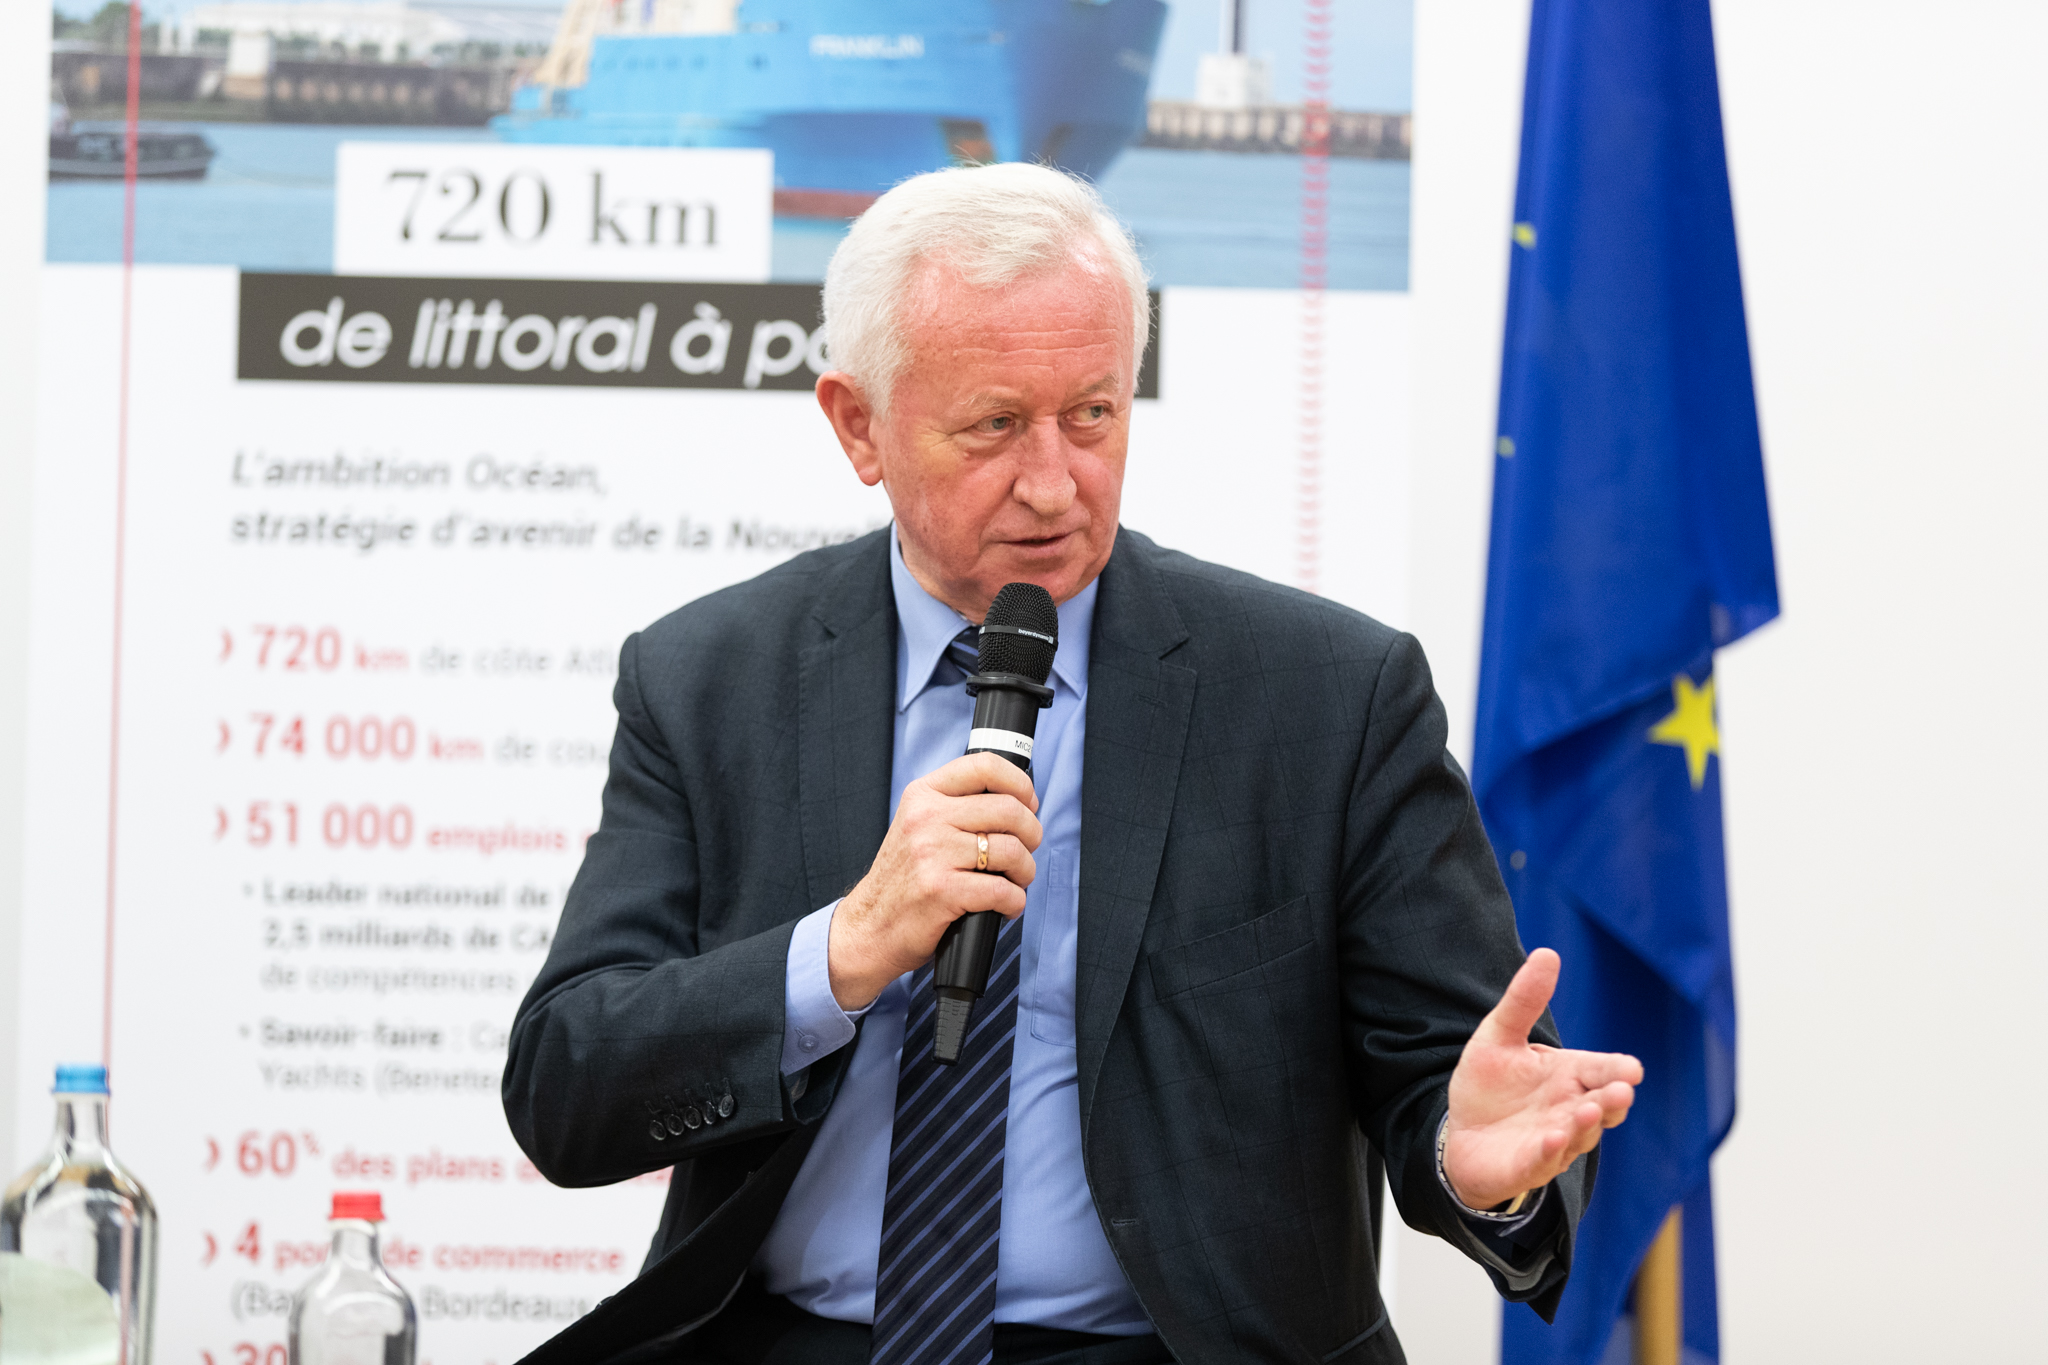 EBI 10 year anniversary   Bogusław Liberadzki (Member of the European Parliament)   2